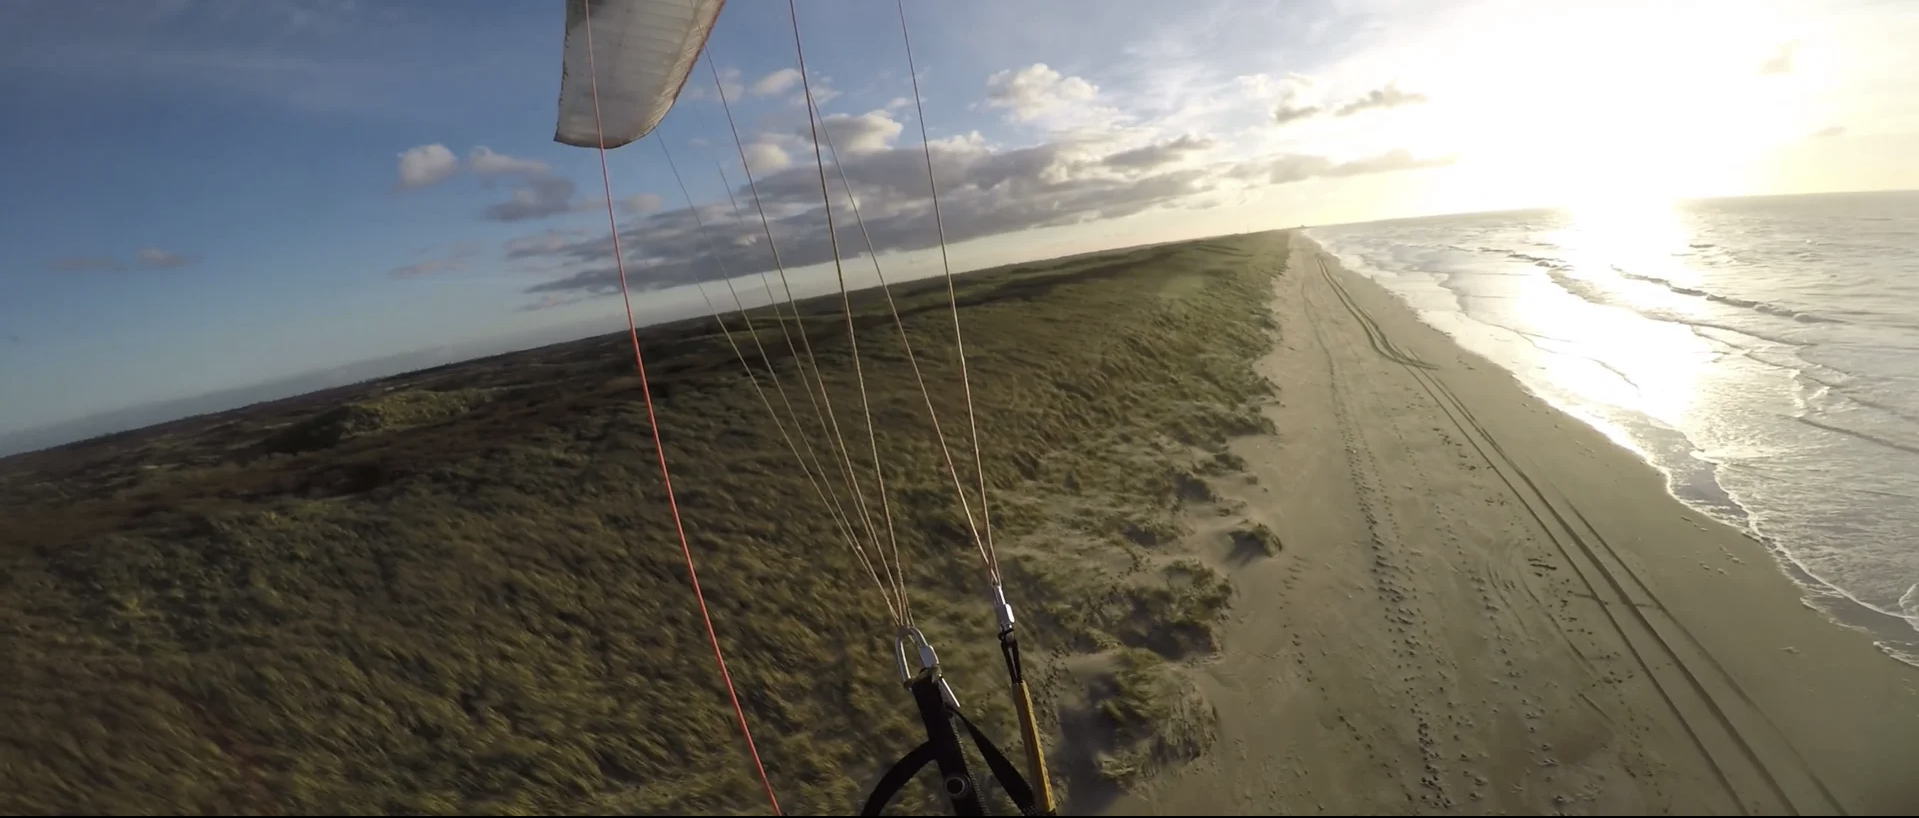 2019-02-27 17_17_39-Dune Soaring_ First Months on Vimeo